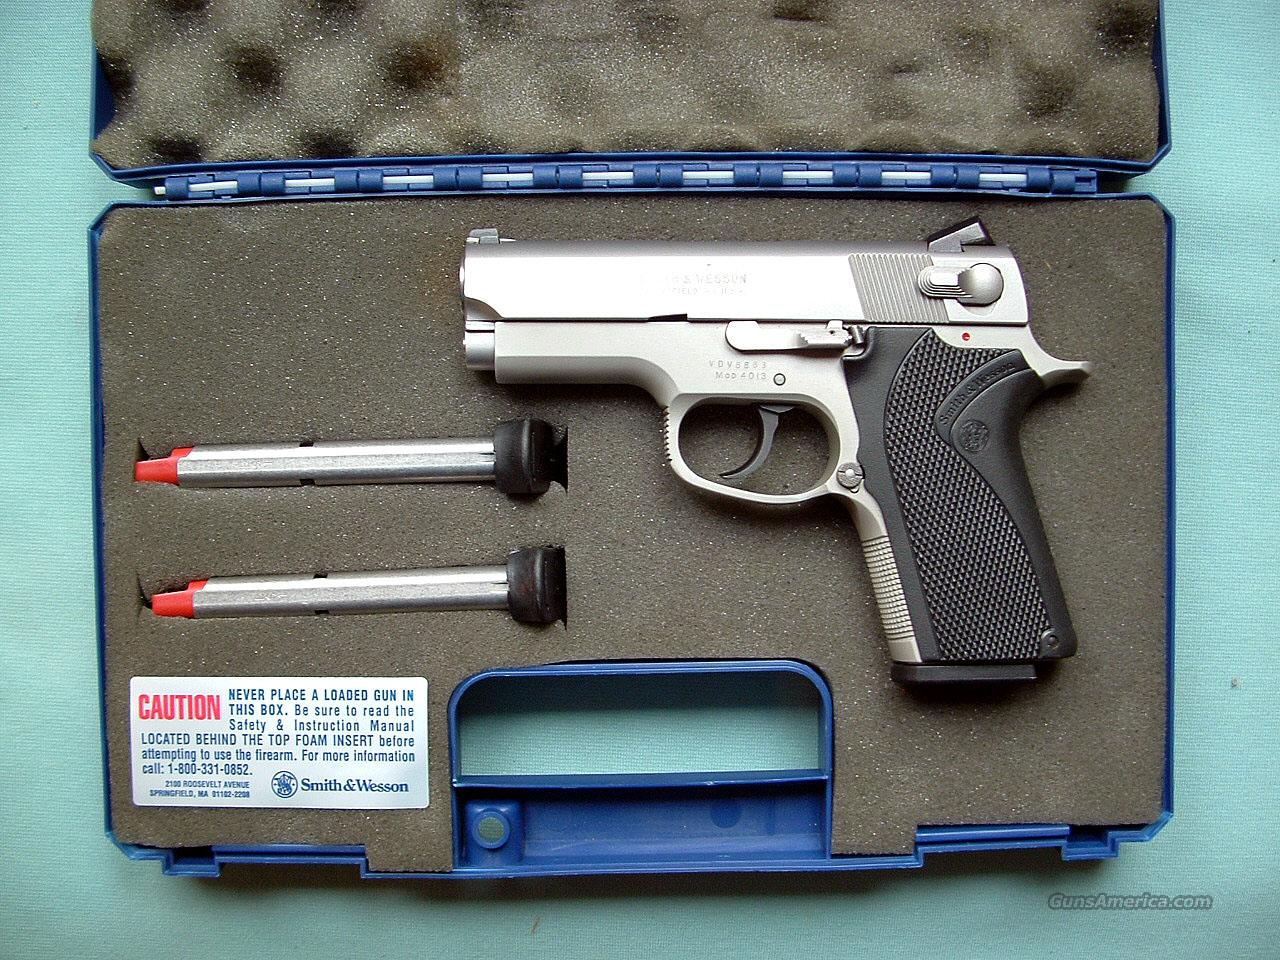 Smith & Wesson Model 4013  Guns > Pistols > Smith & Wesson Pistols - Autos > Steel Frame